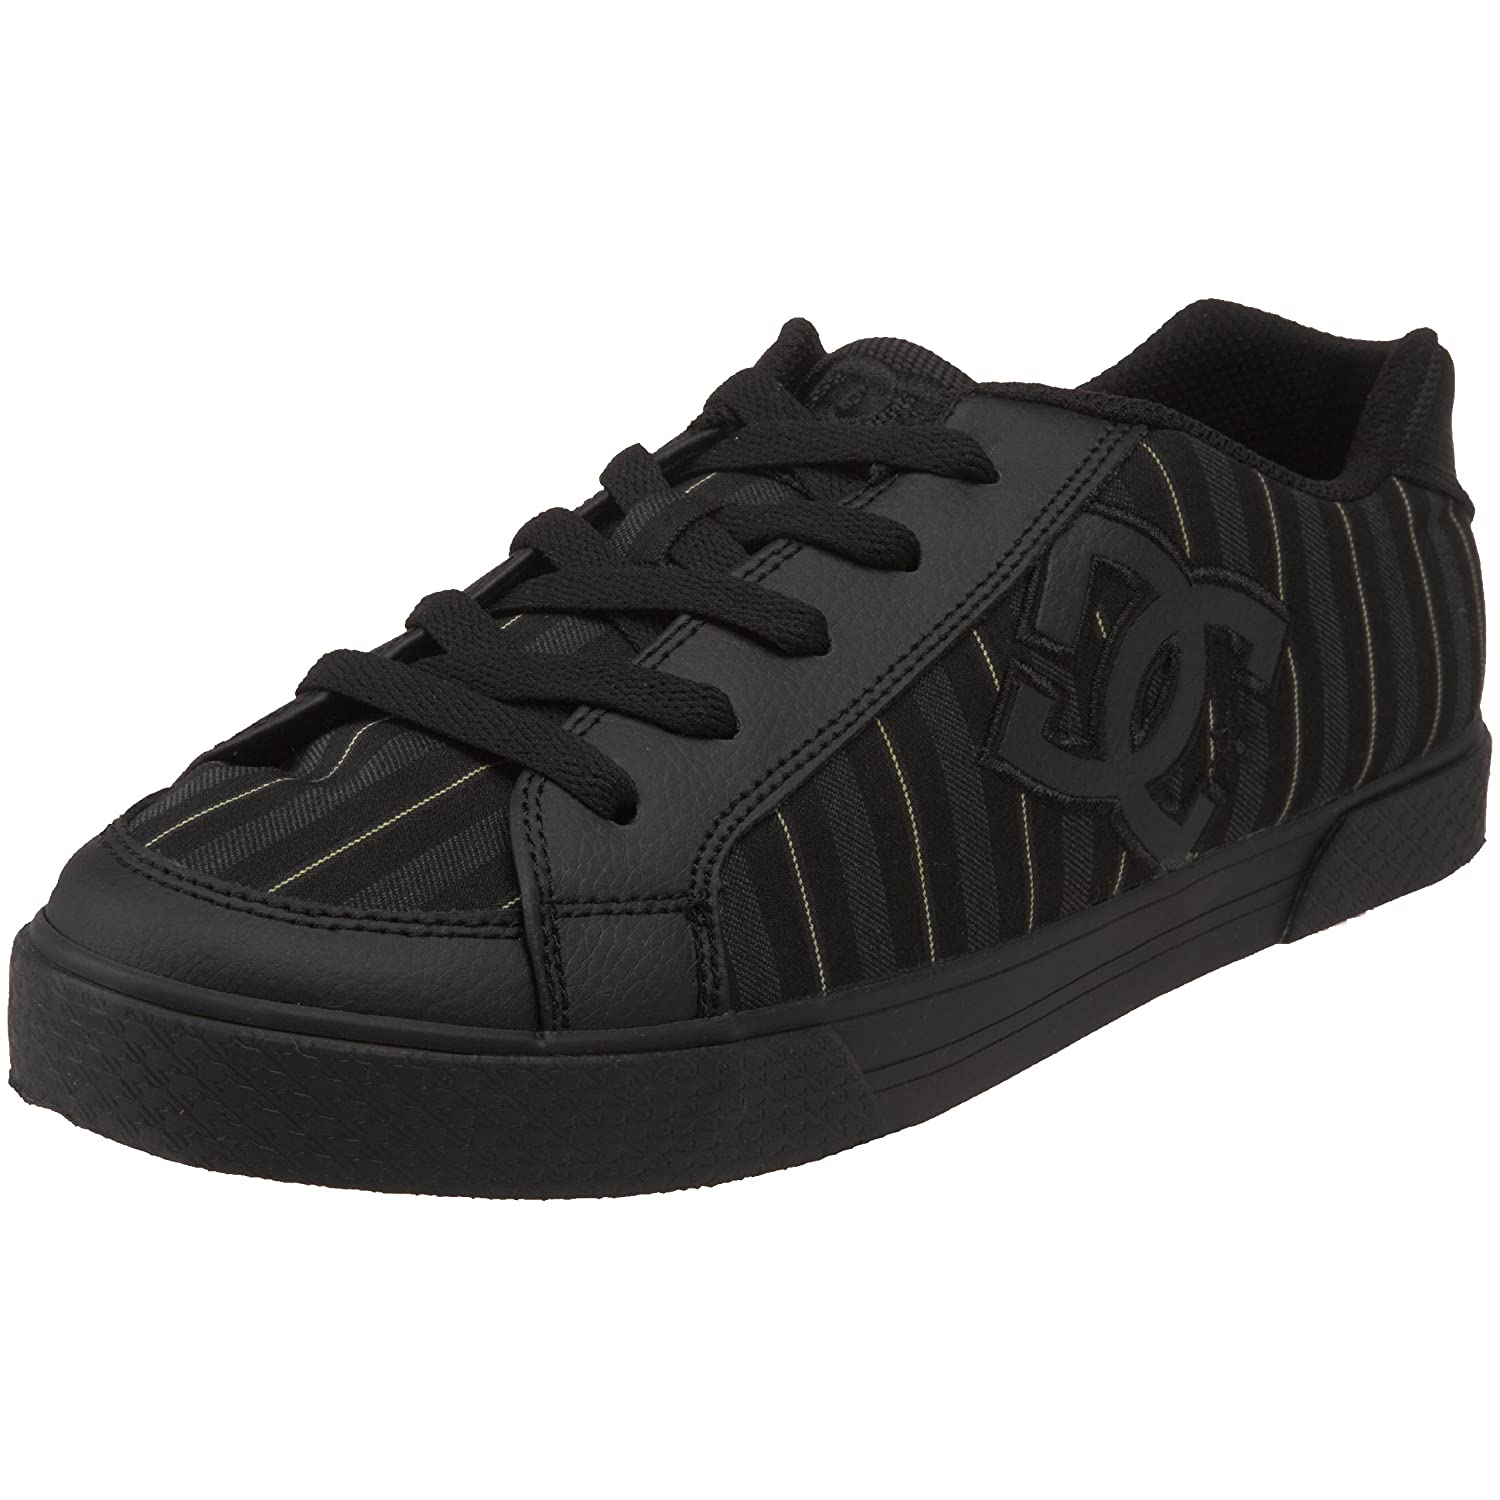 bc84671a5a3f DC Men s Empire TX Skate Shoe Black yellow 8 D(M) US  Buy Online at Low  Prices in India - Amazon.in